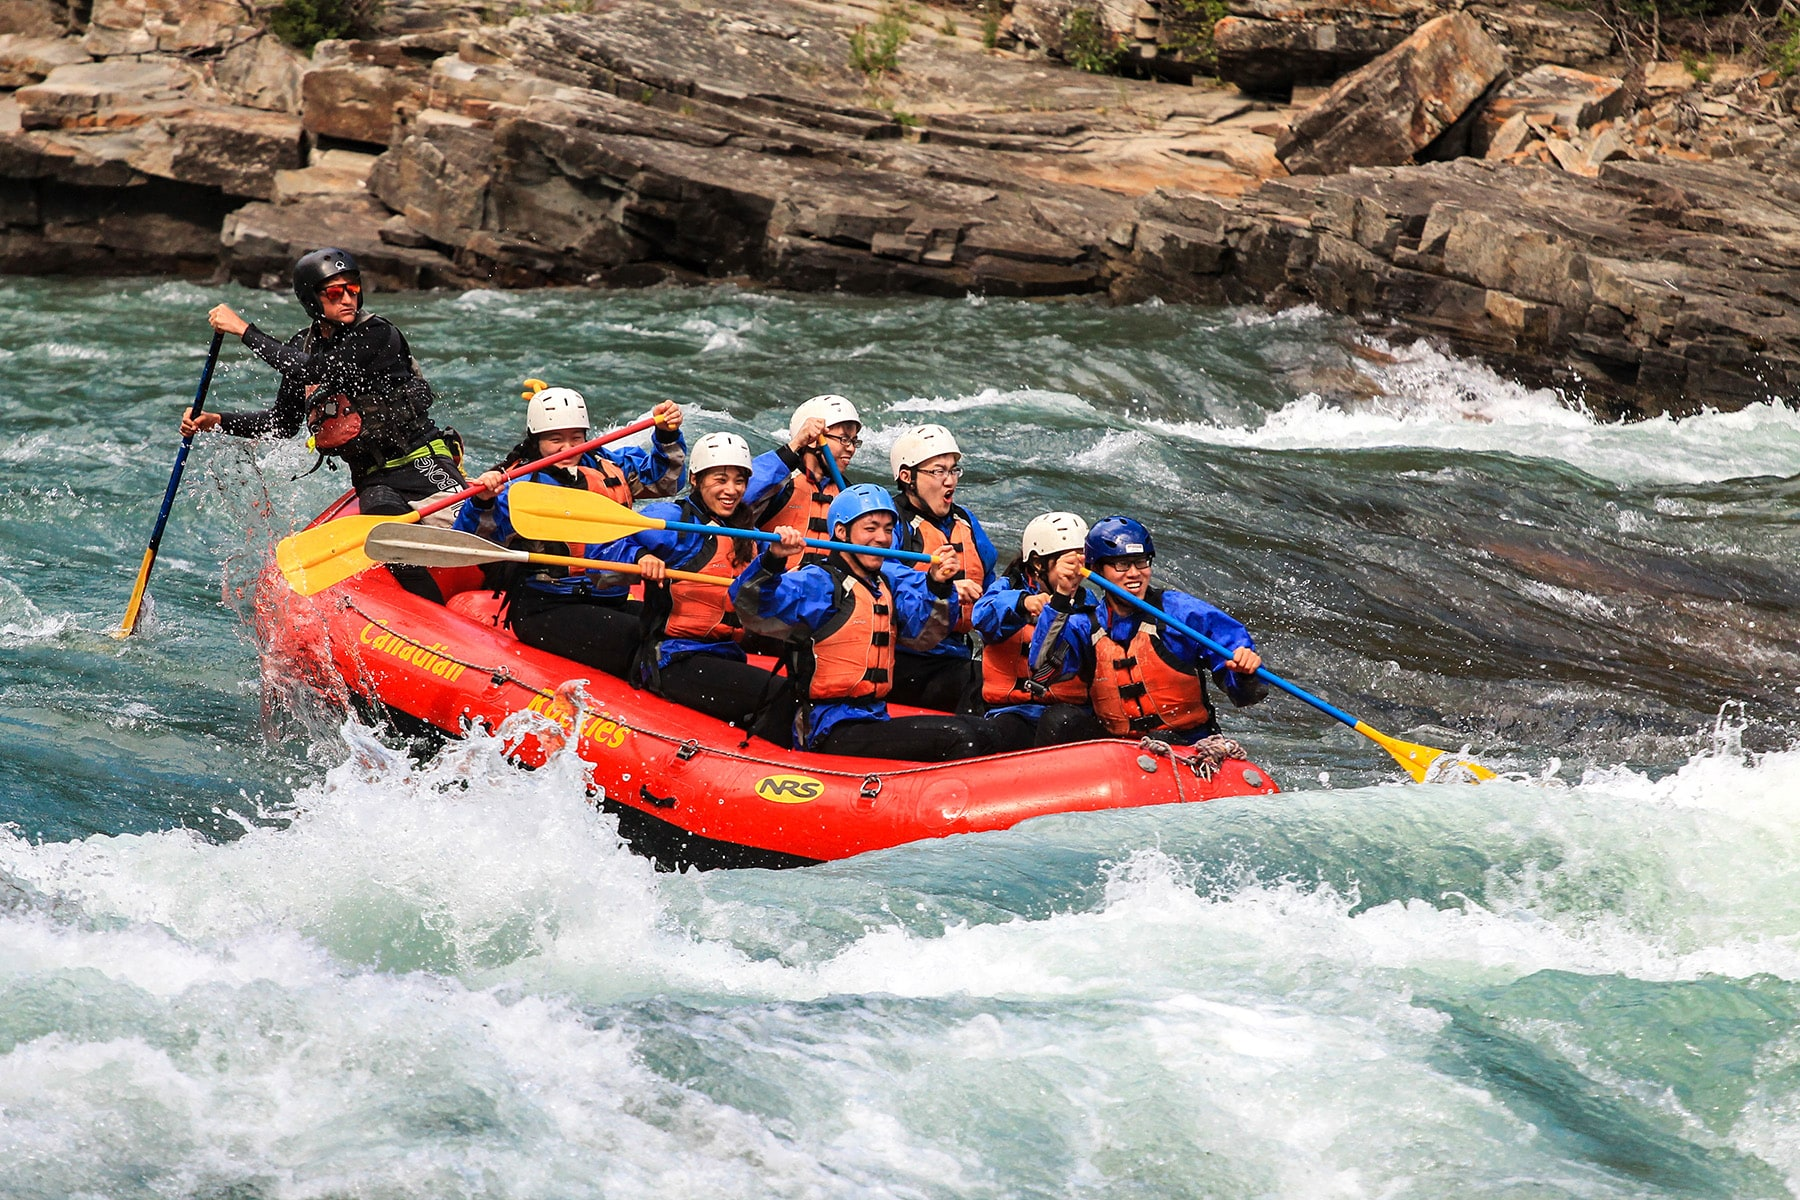 River rafting near Canmore Alberta